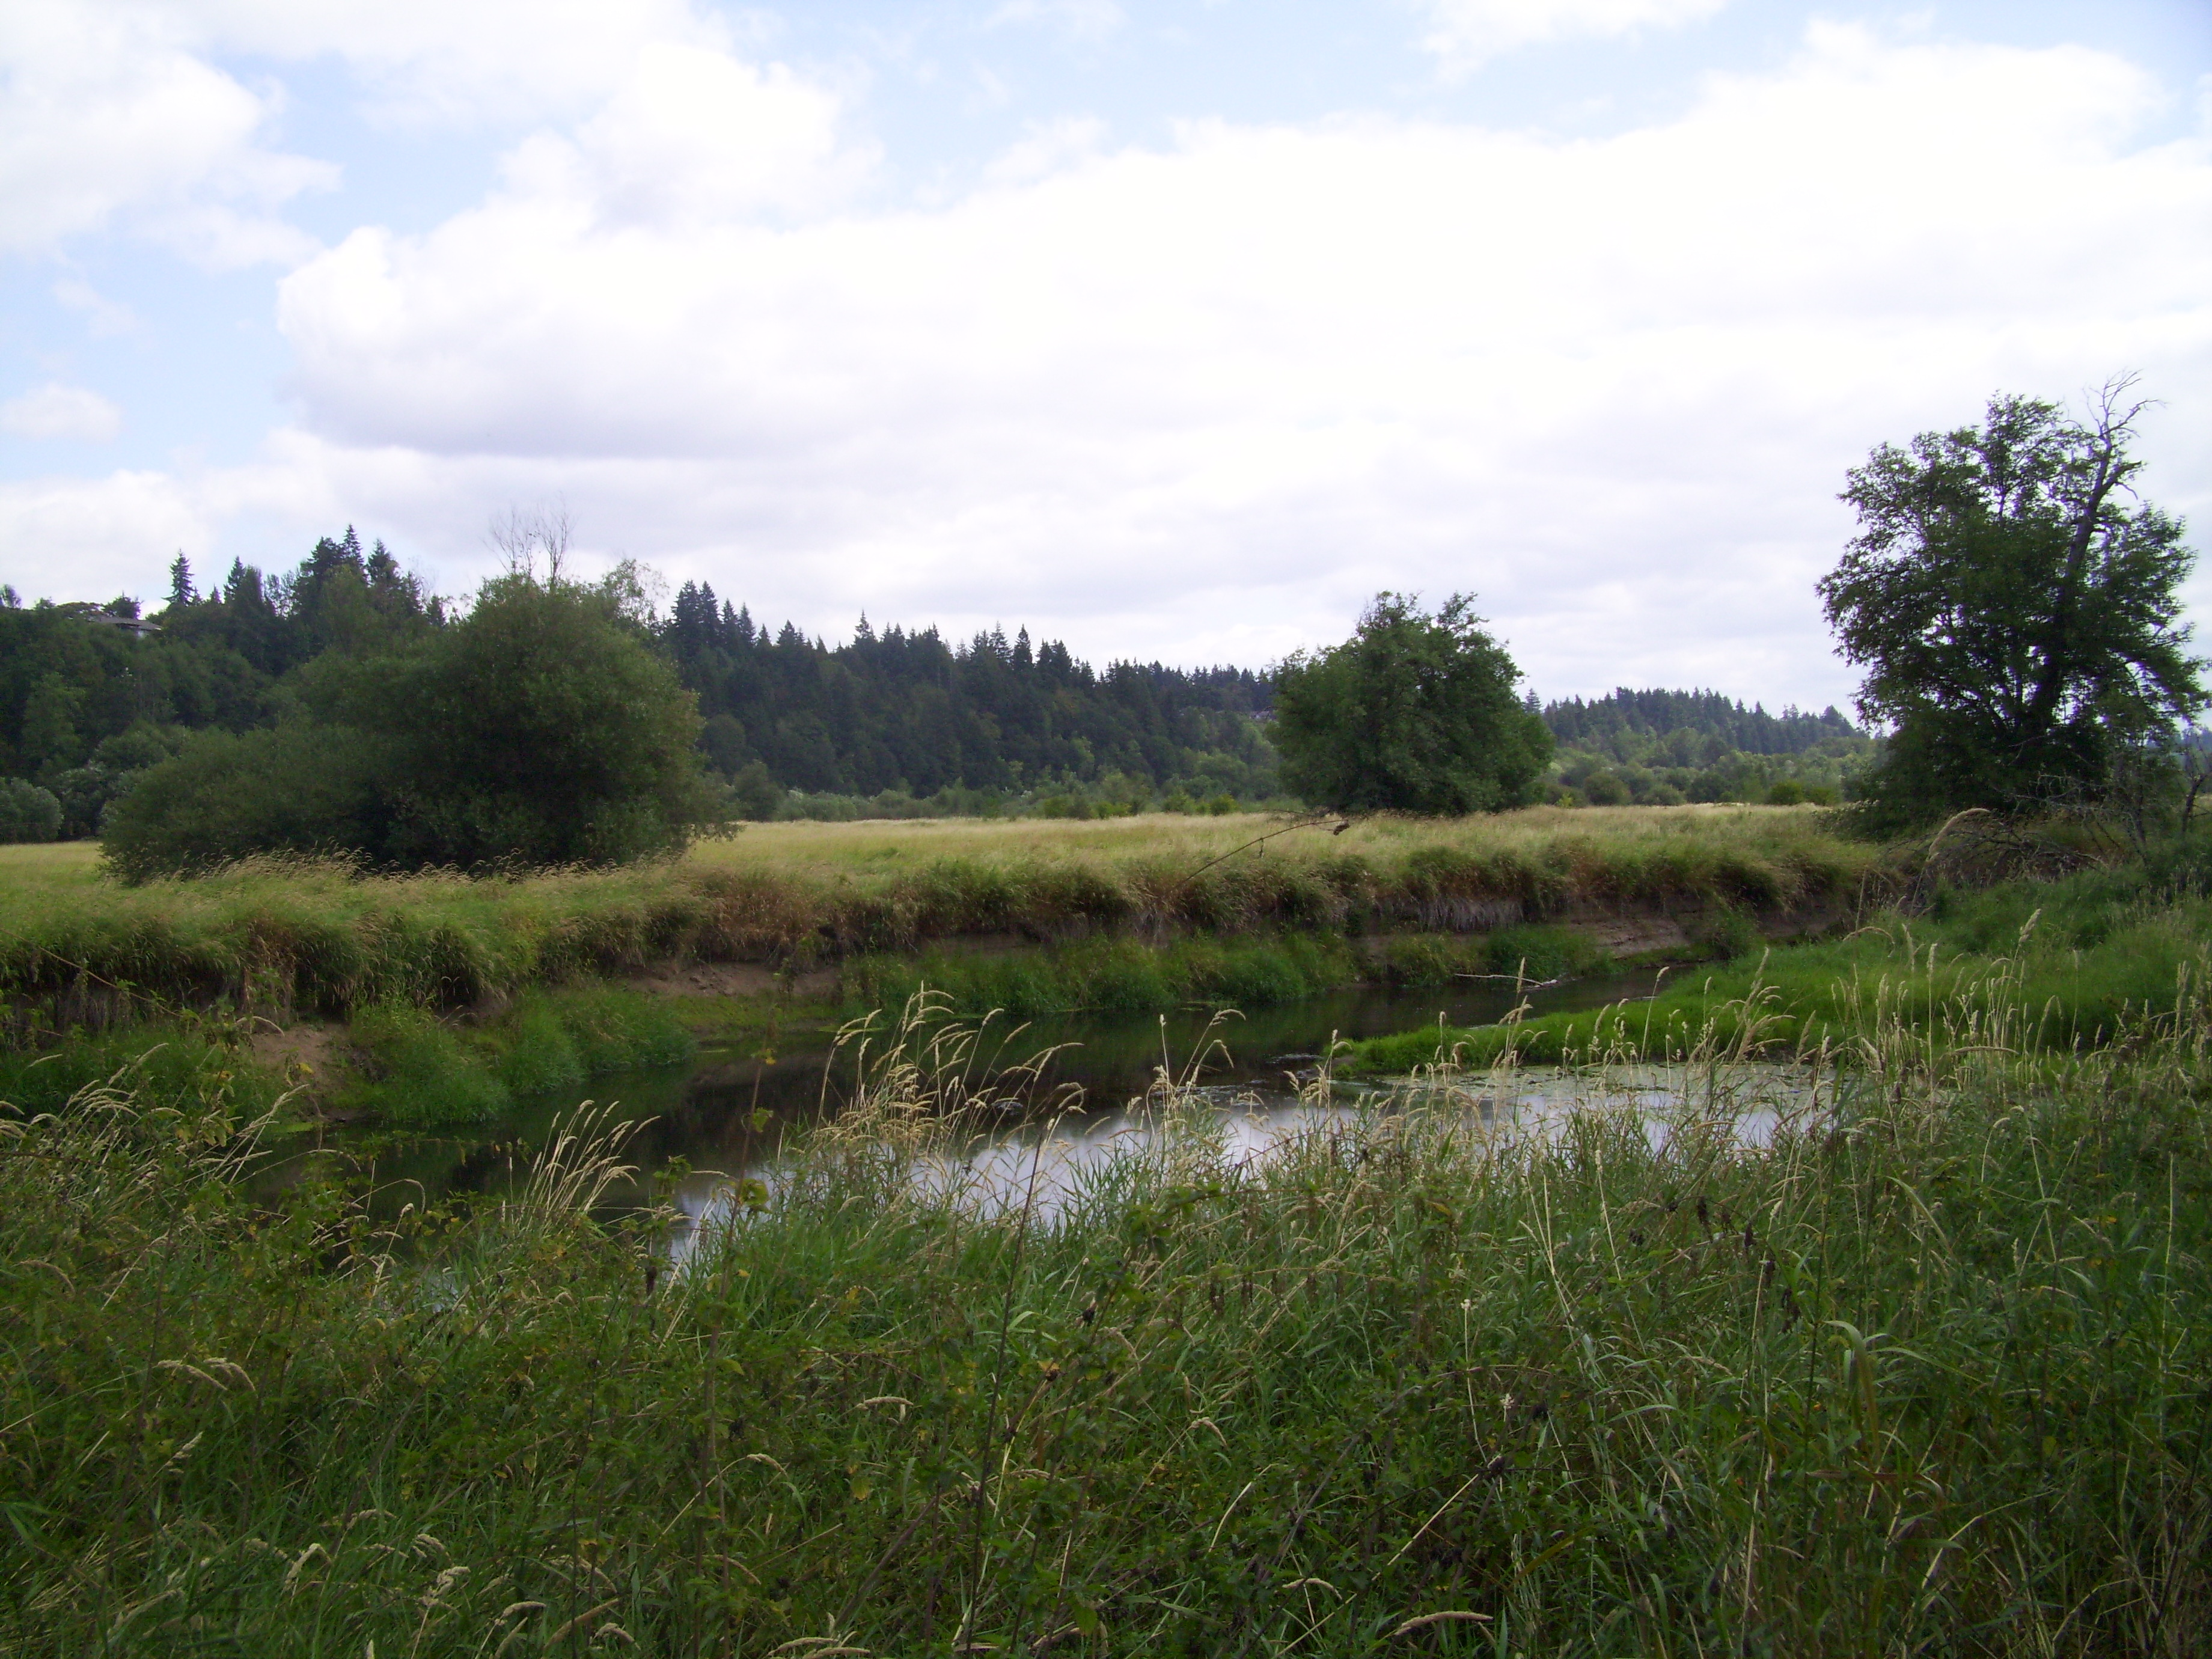 Another view of the Salmon Creek wetlands